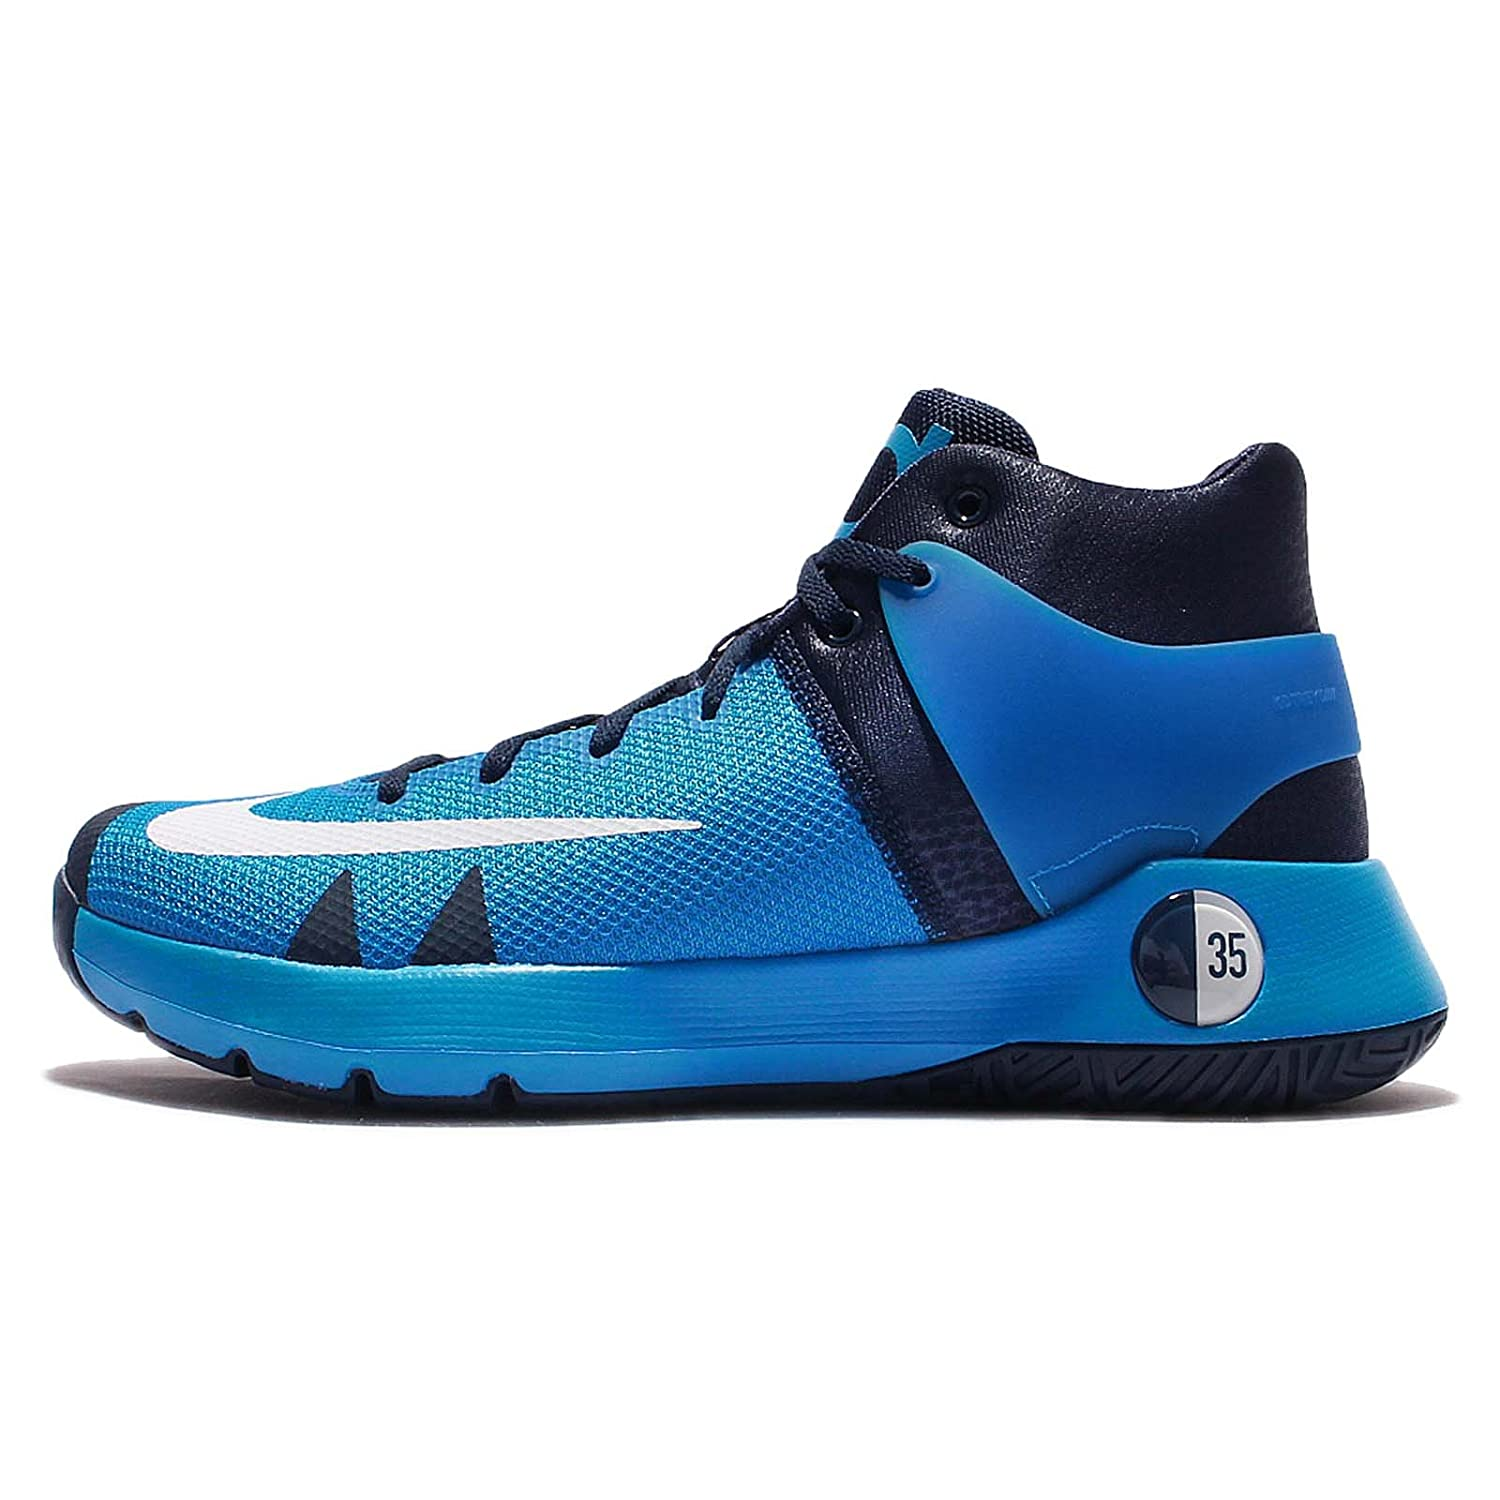 designer fashion 2e8d5 ae180 Amazon.com   Nike Men s KD Trey 5 IV EP, PHOTO BLUE BRIGHT CITRUS, 13 M US    Shoes